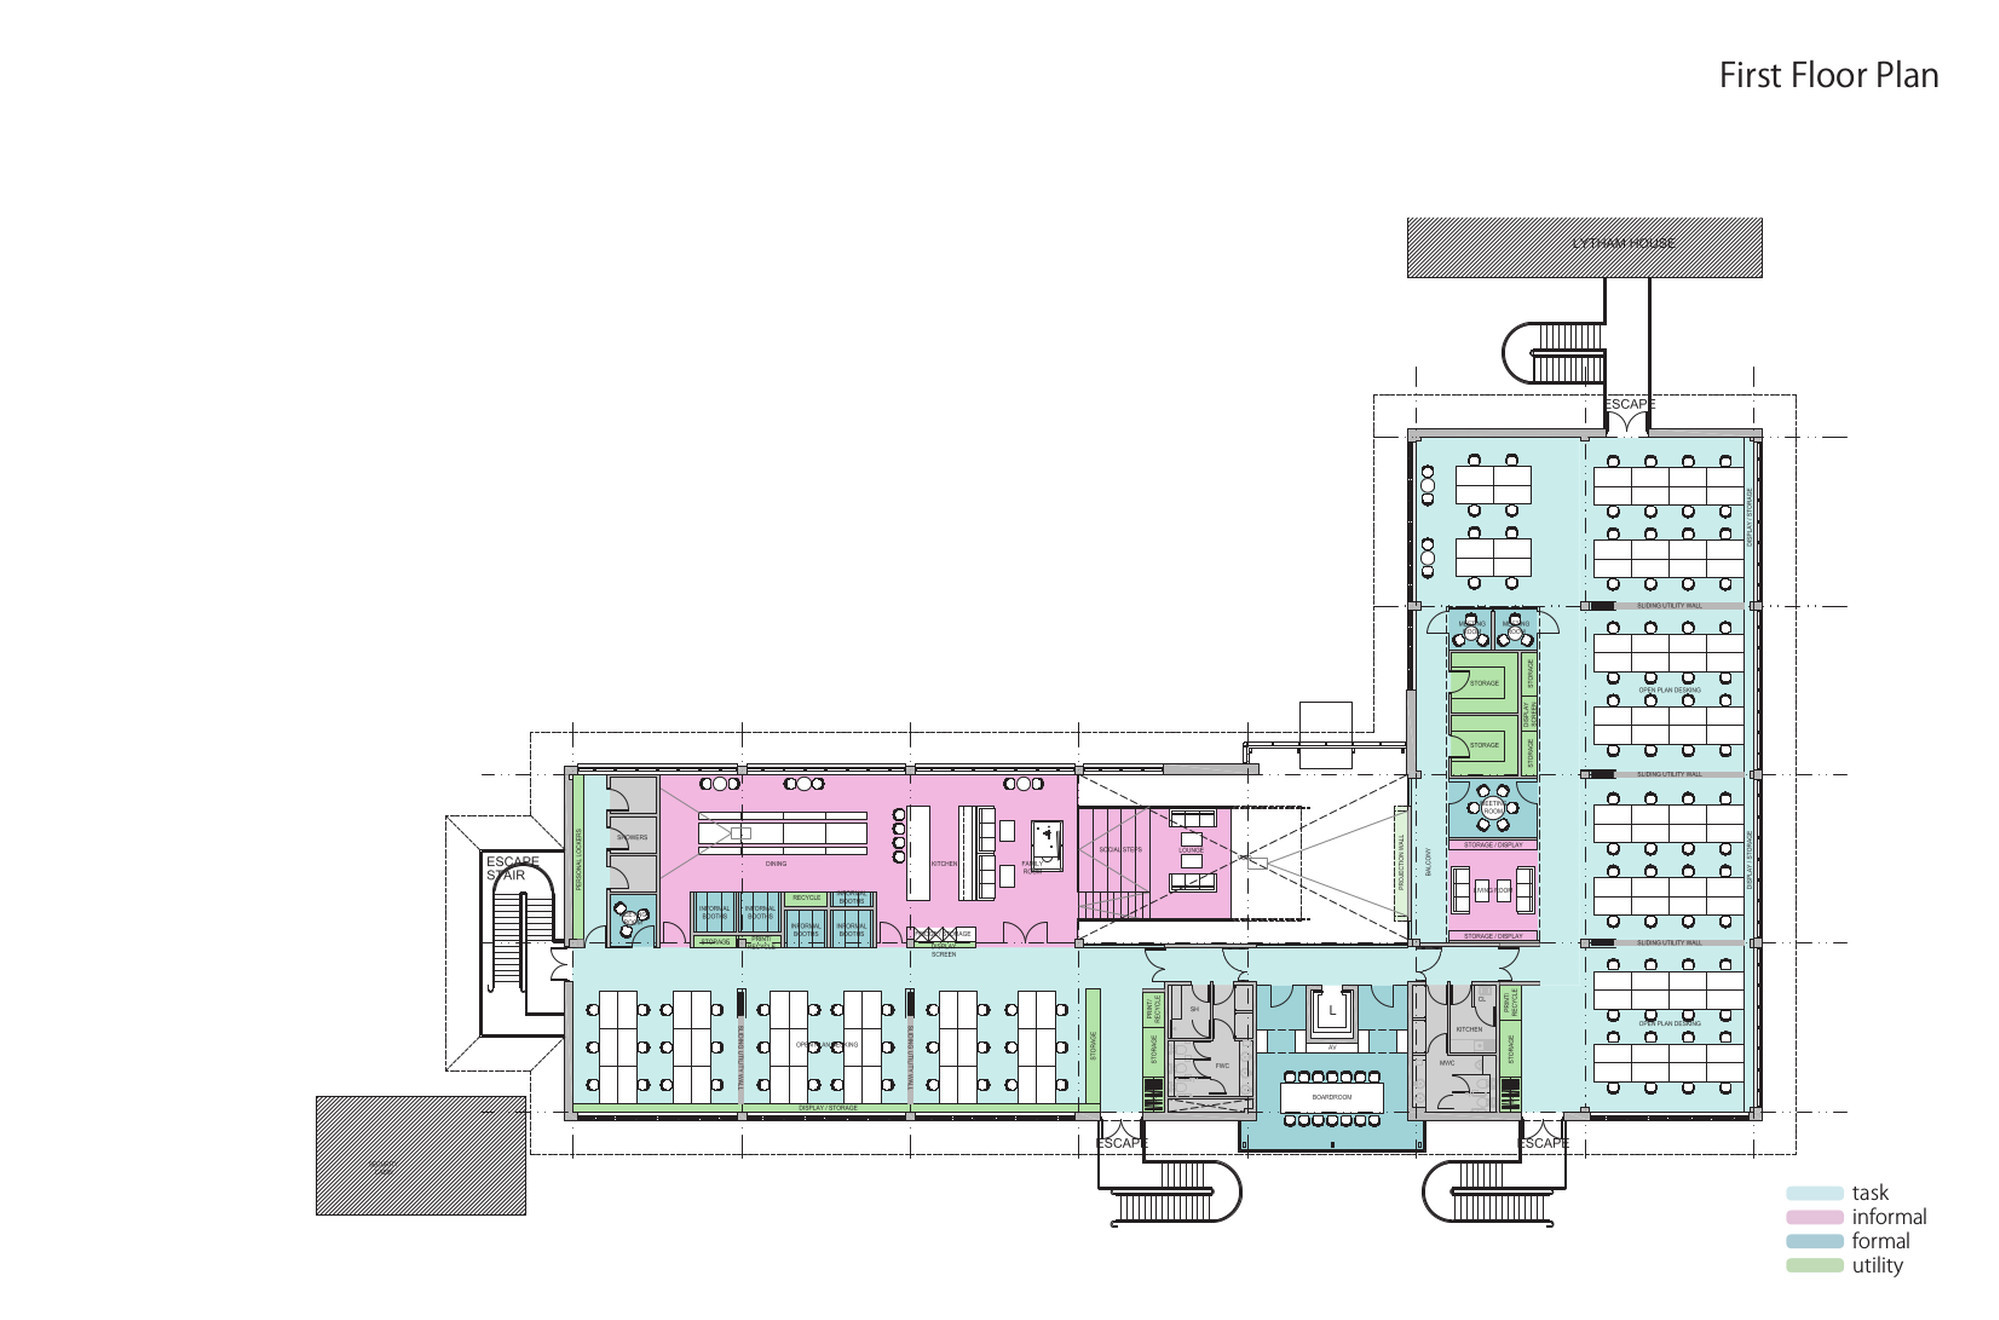 Rightmove Offices Ground Floor Plan